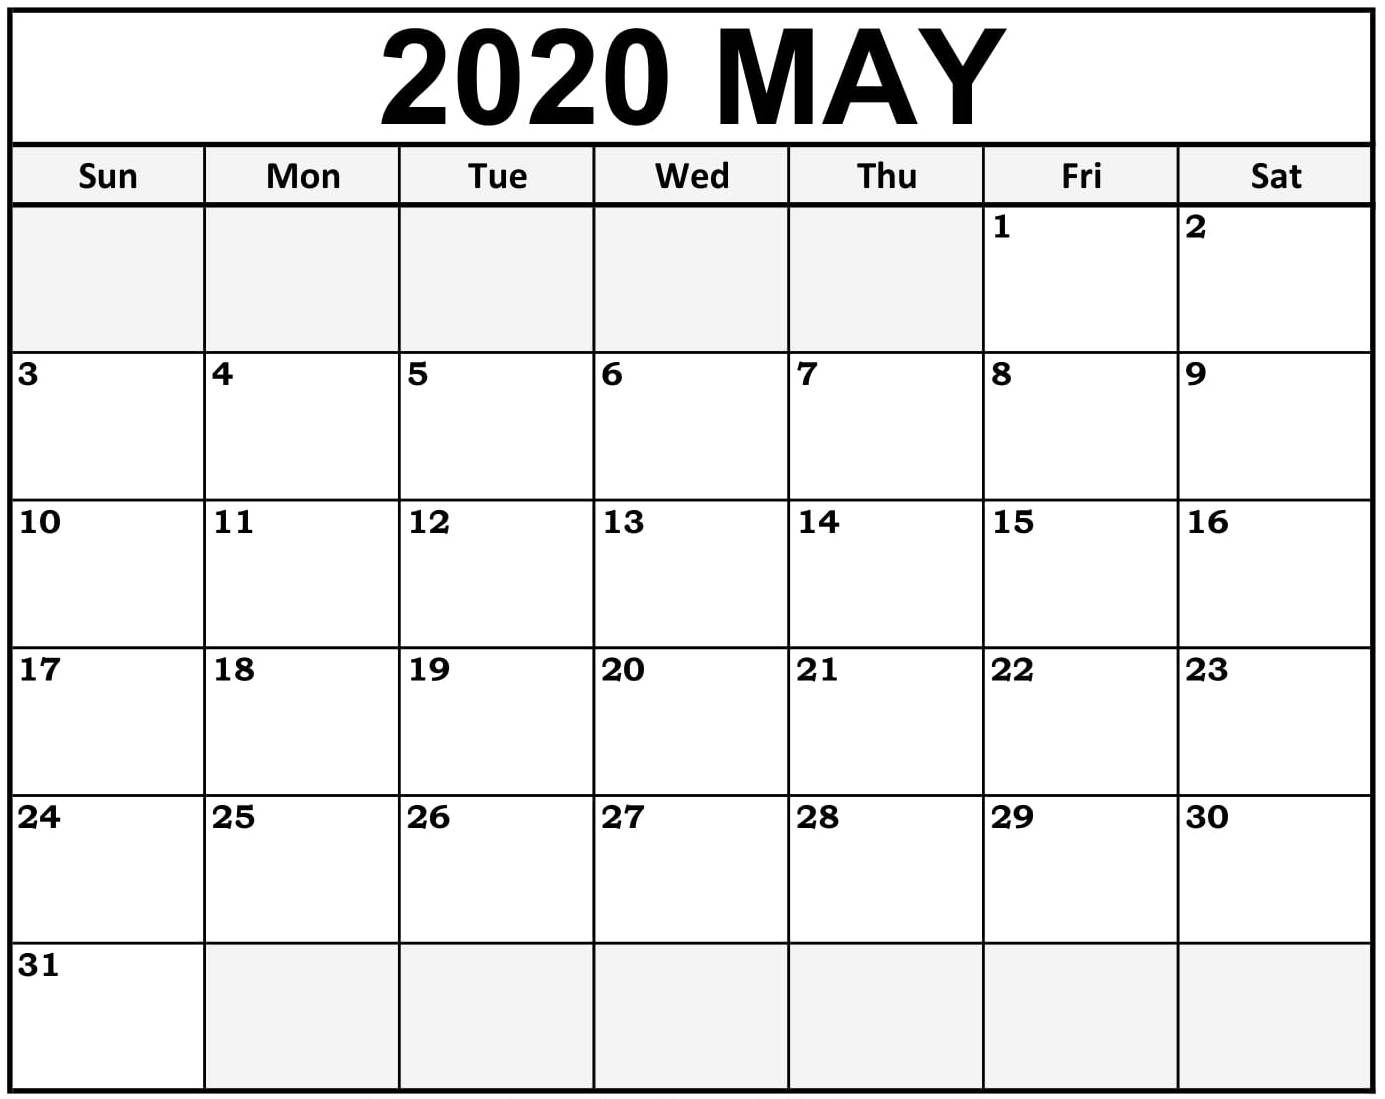 007 Fantastic Calendar Template 2020 Word Photo  April Monthly Microsoft With Holiday FebruaryFull